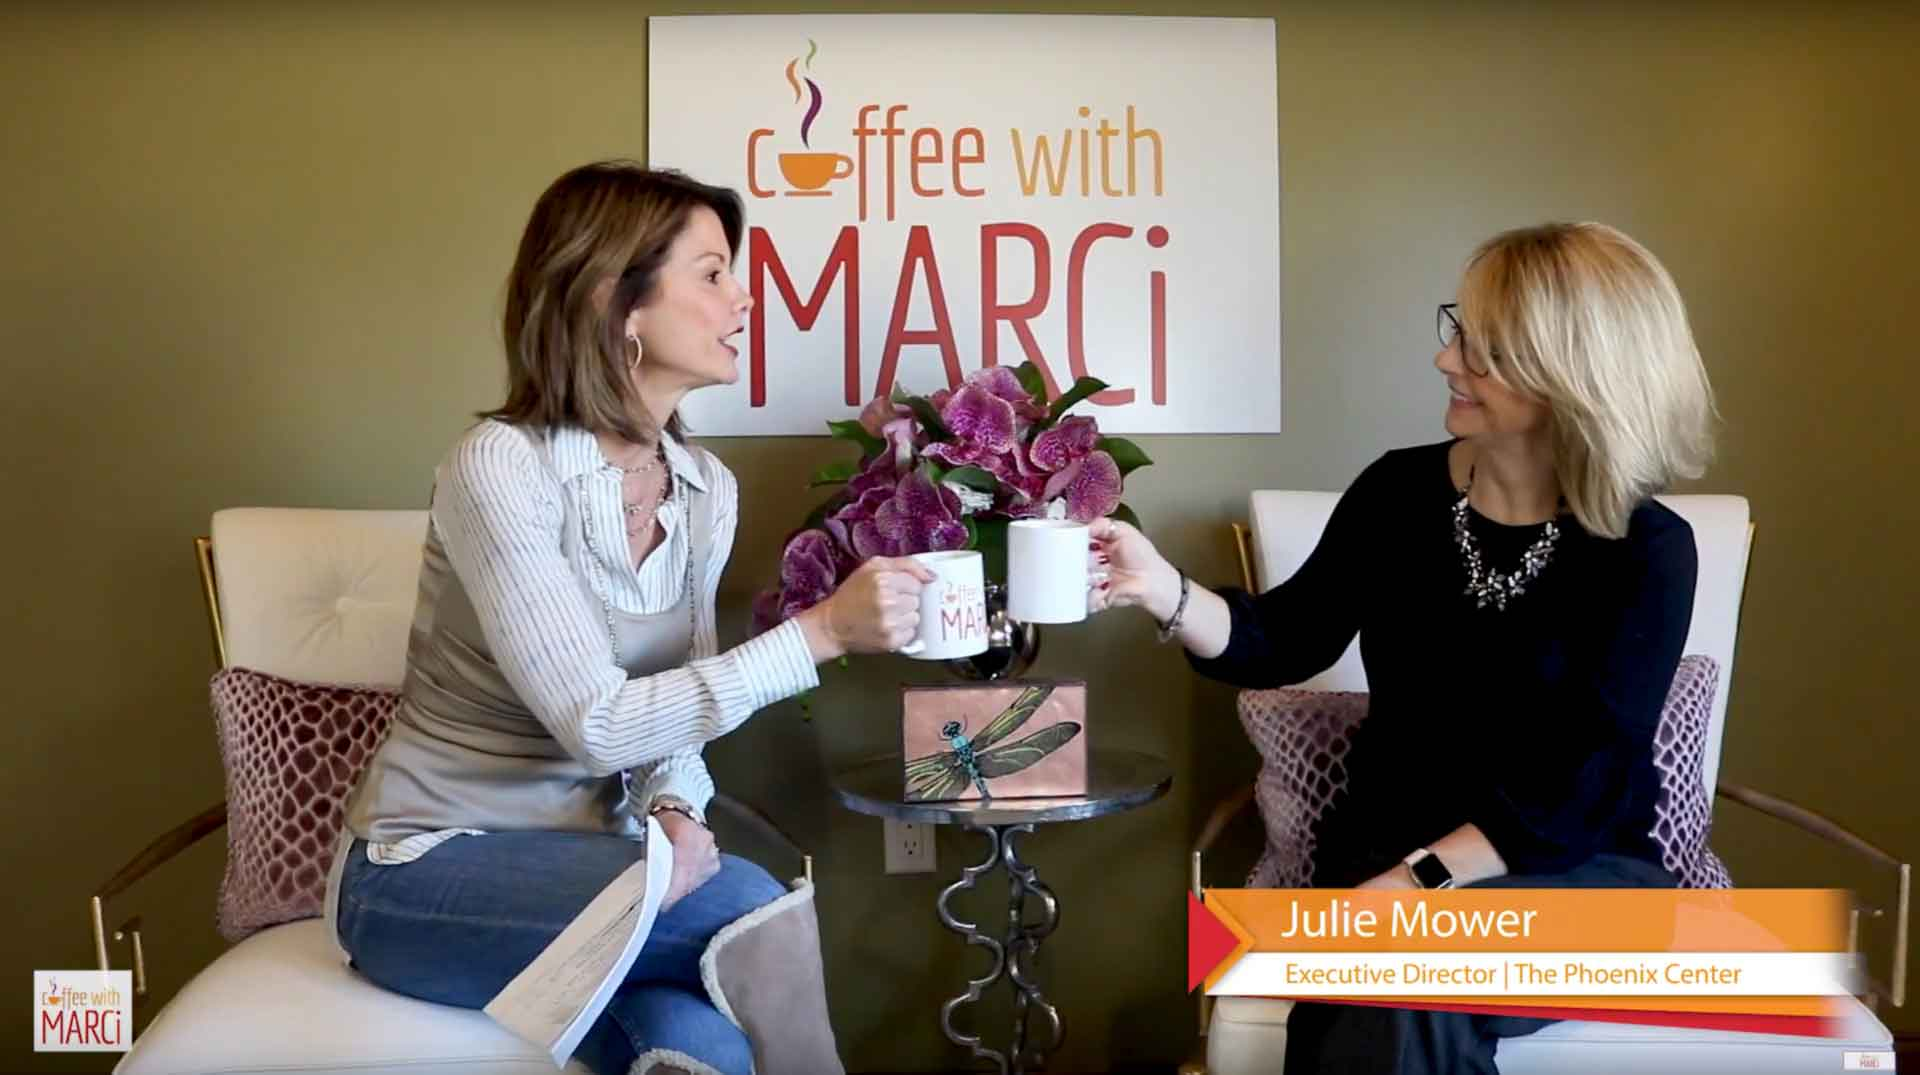 Julie Mower having coffee with Marci